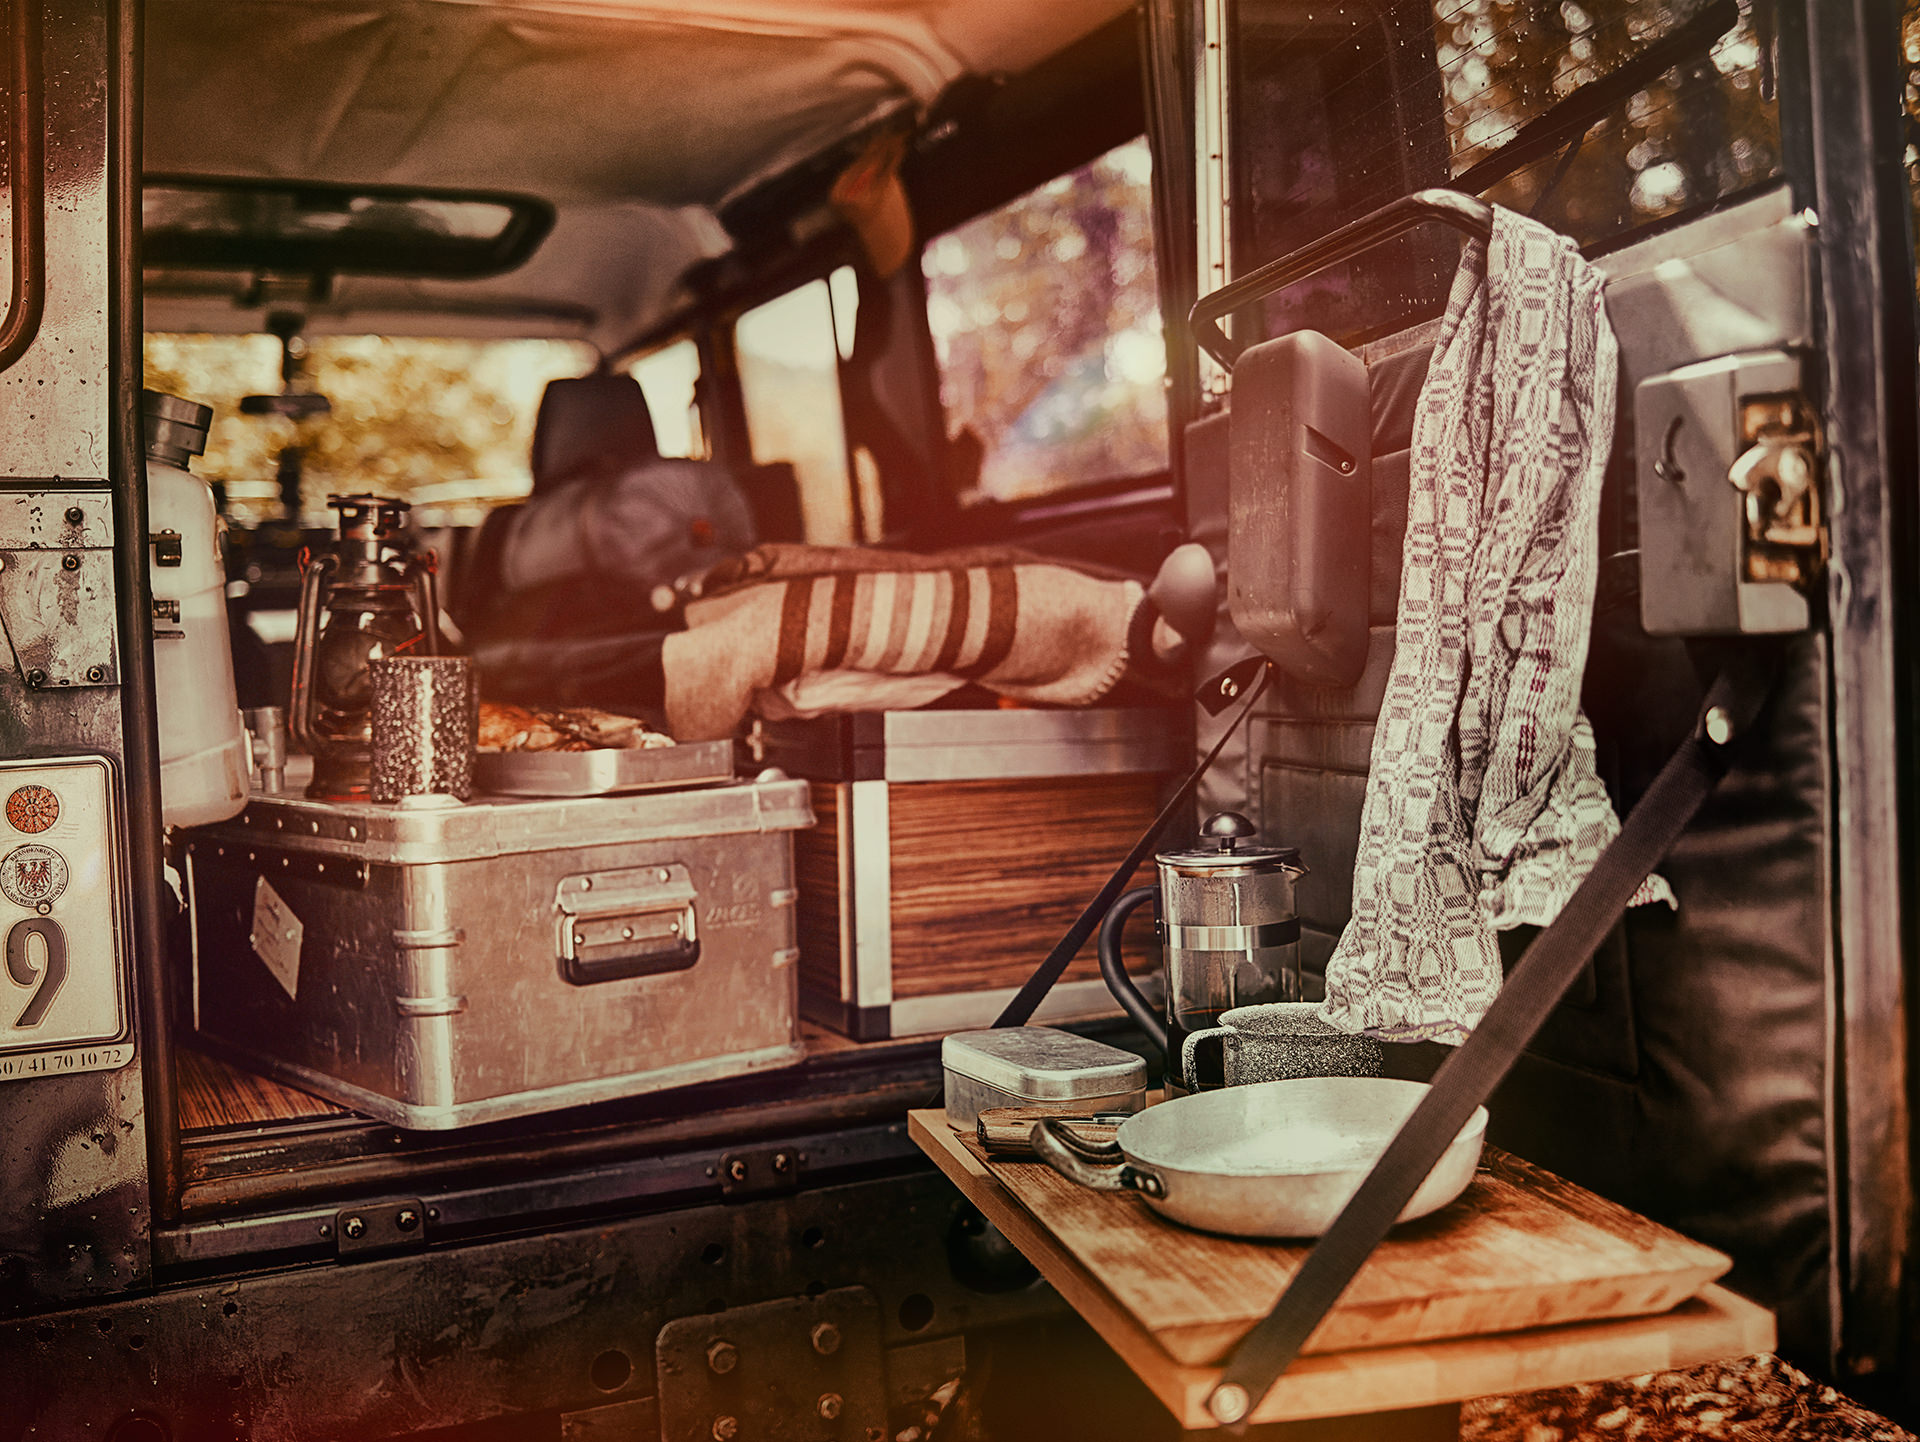 camping-jeep-equipment-maenner-weber